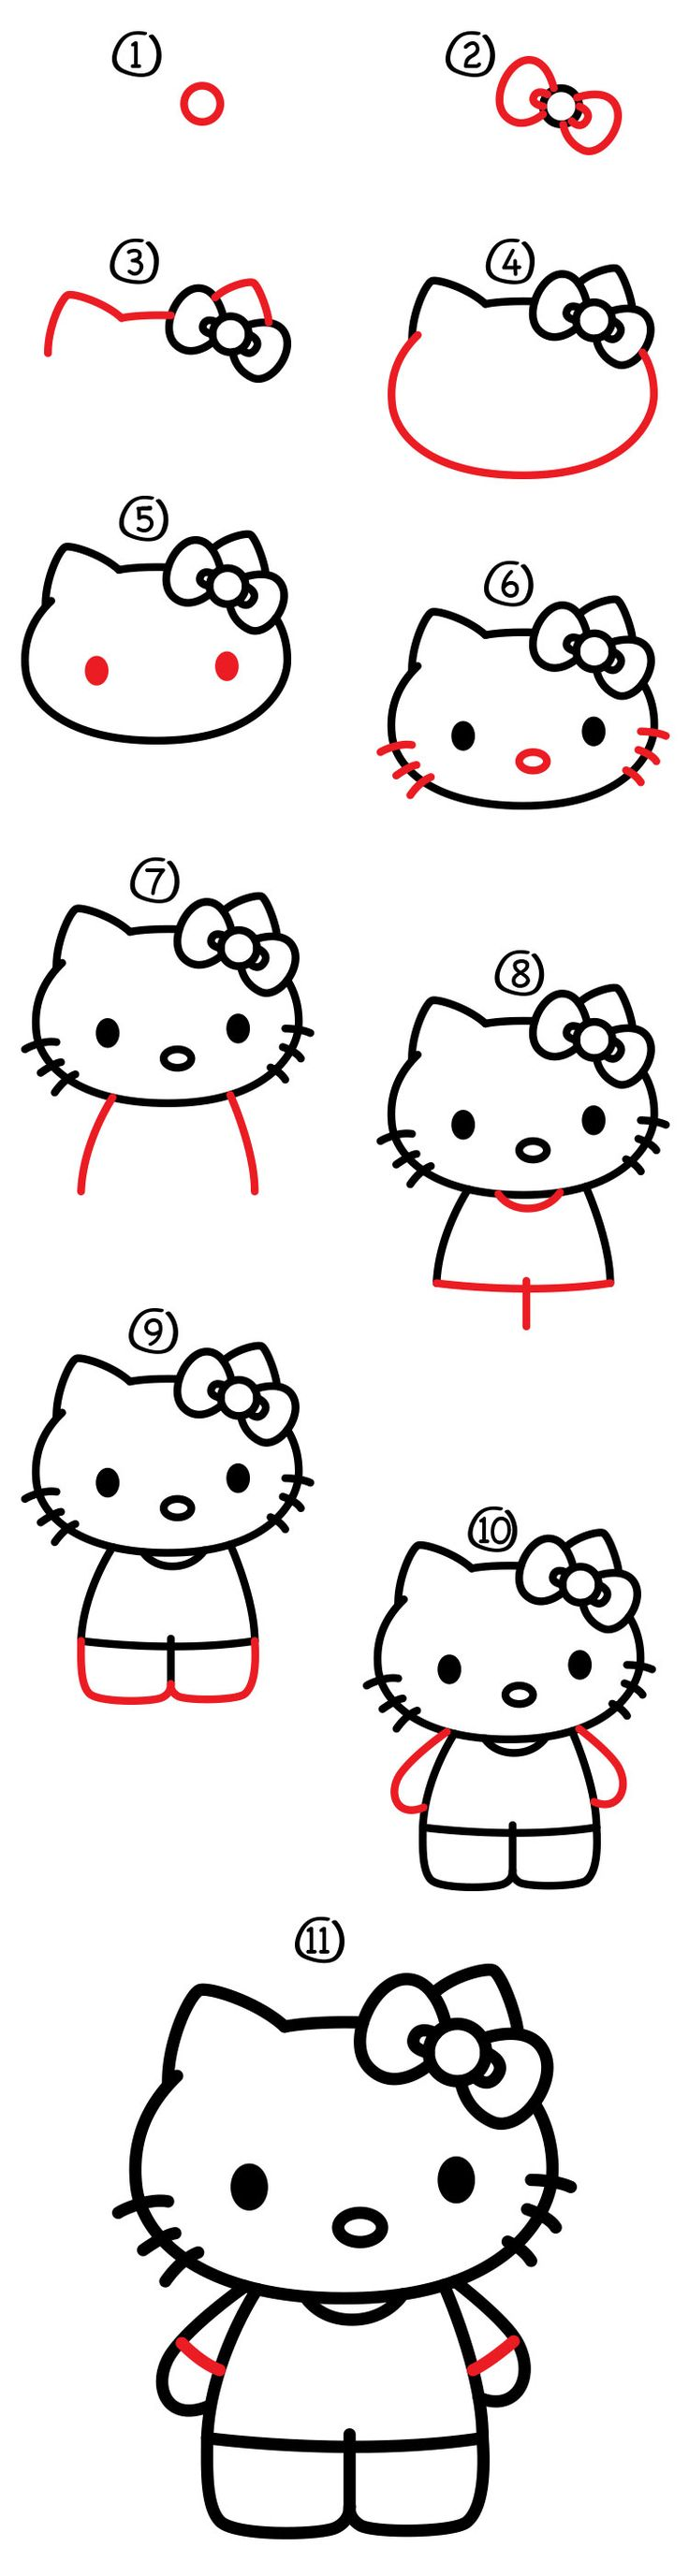 Follow-along-with-us-and-learn-how-to-draw-Hello-Kitty.-Also-be-sure-to-visit-th Follow along with us and learn how to draw Hello Kitty. Also be sure to visit th... Hello Kitty